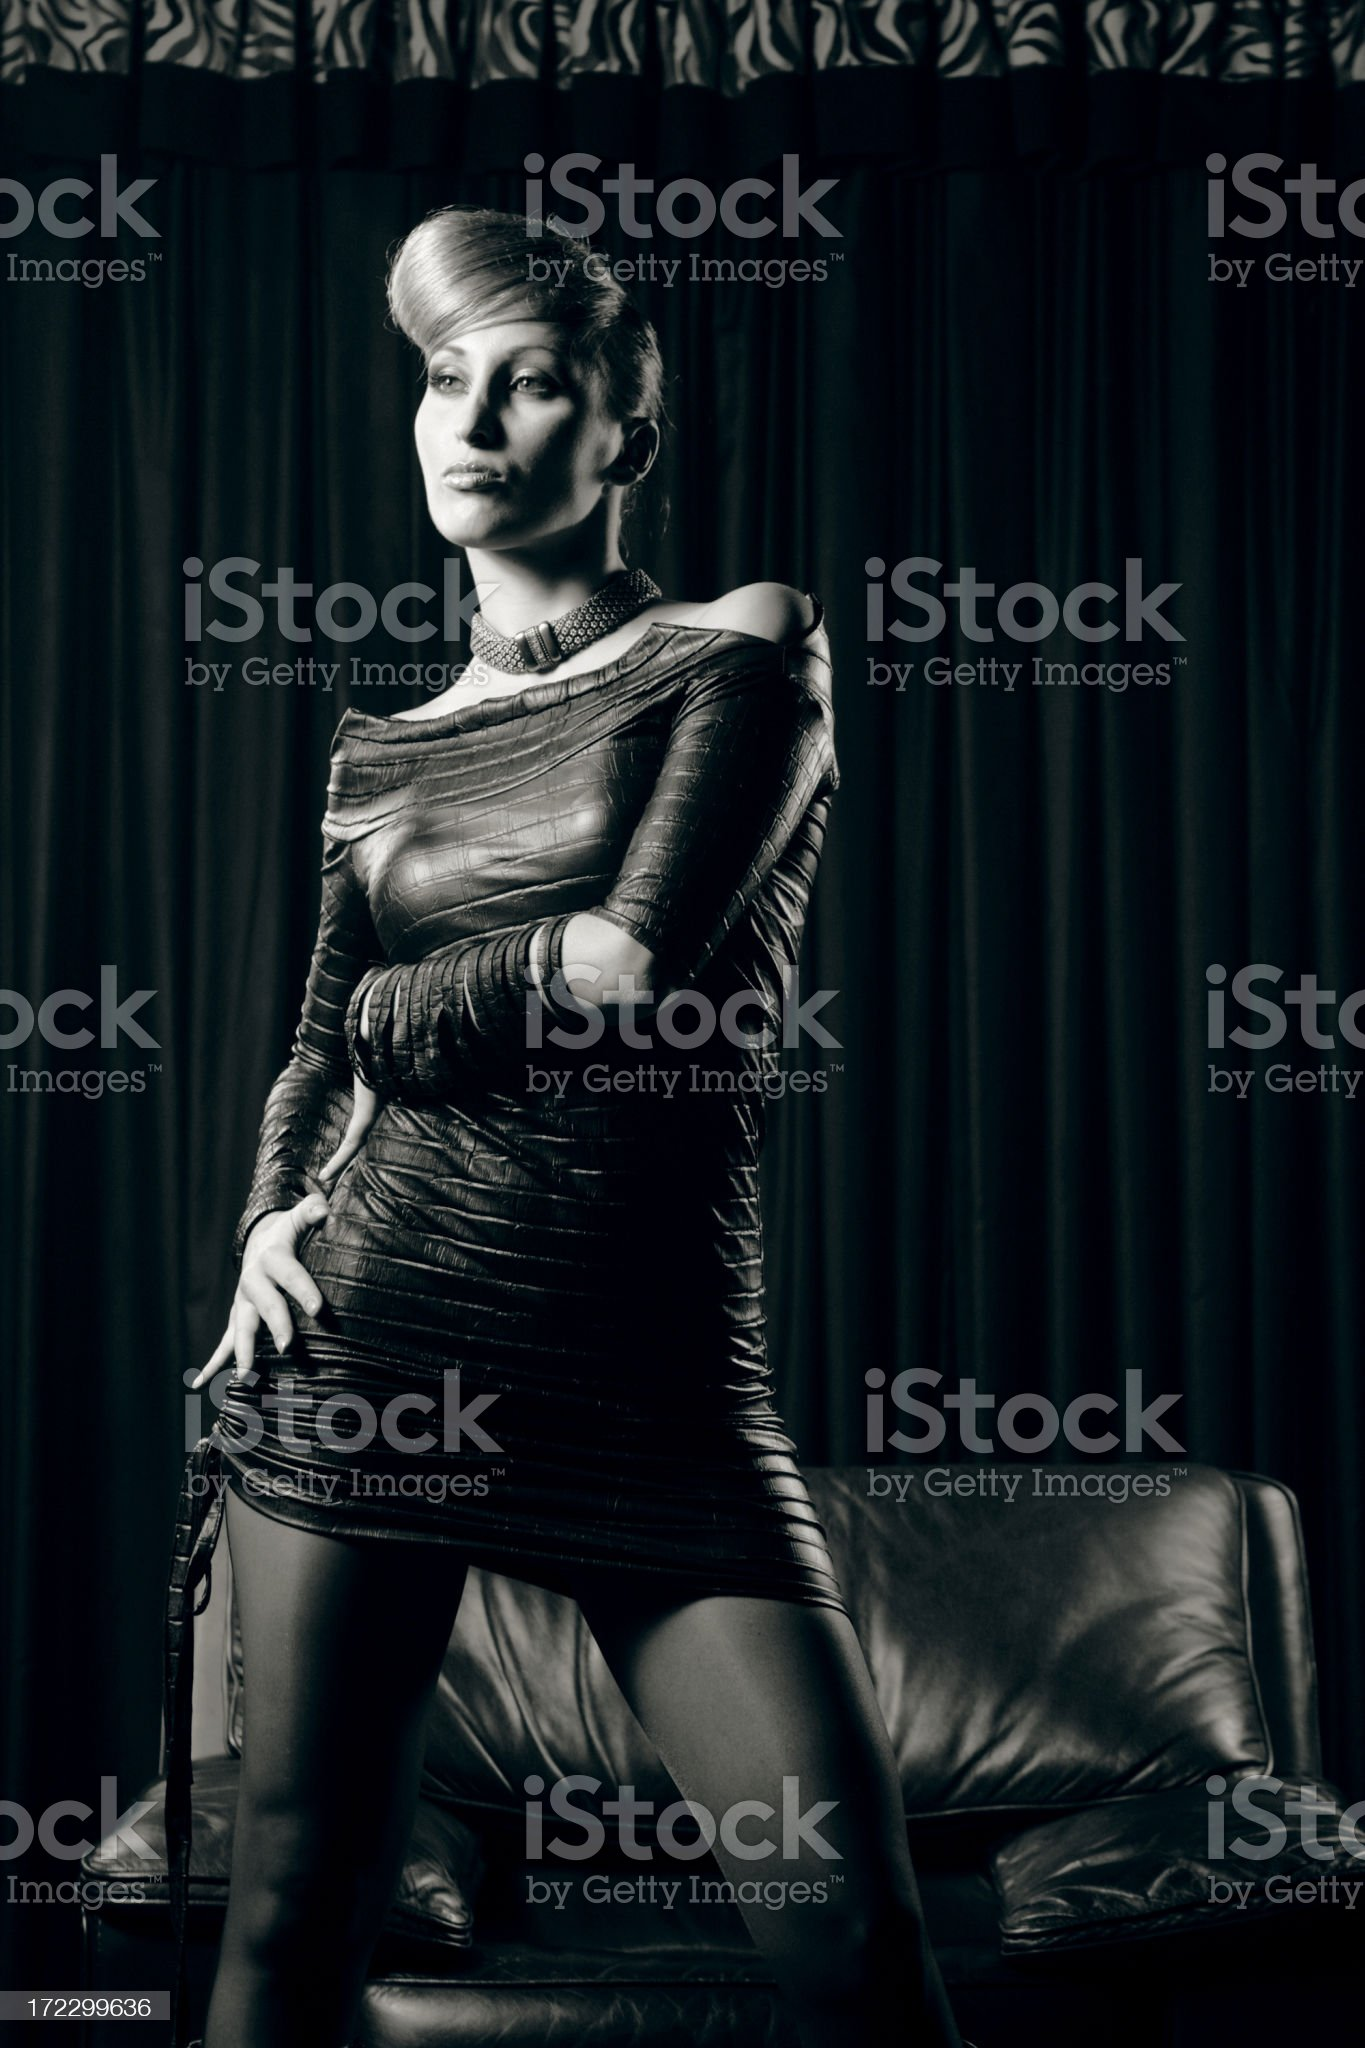 Fetish fashion royalty-free stock photo